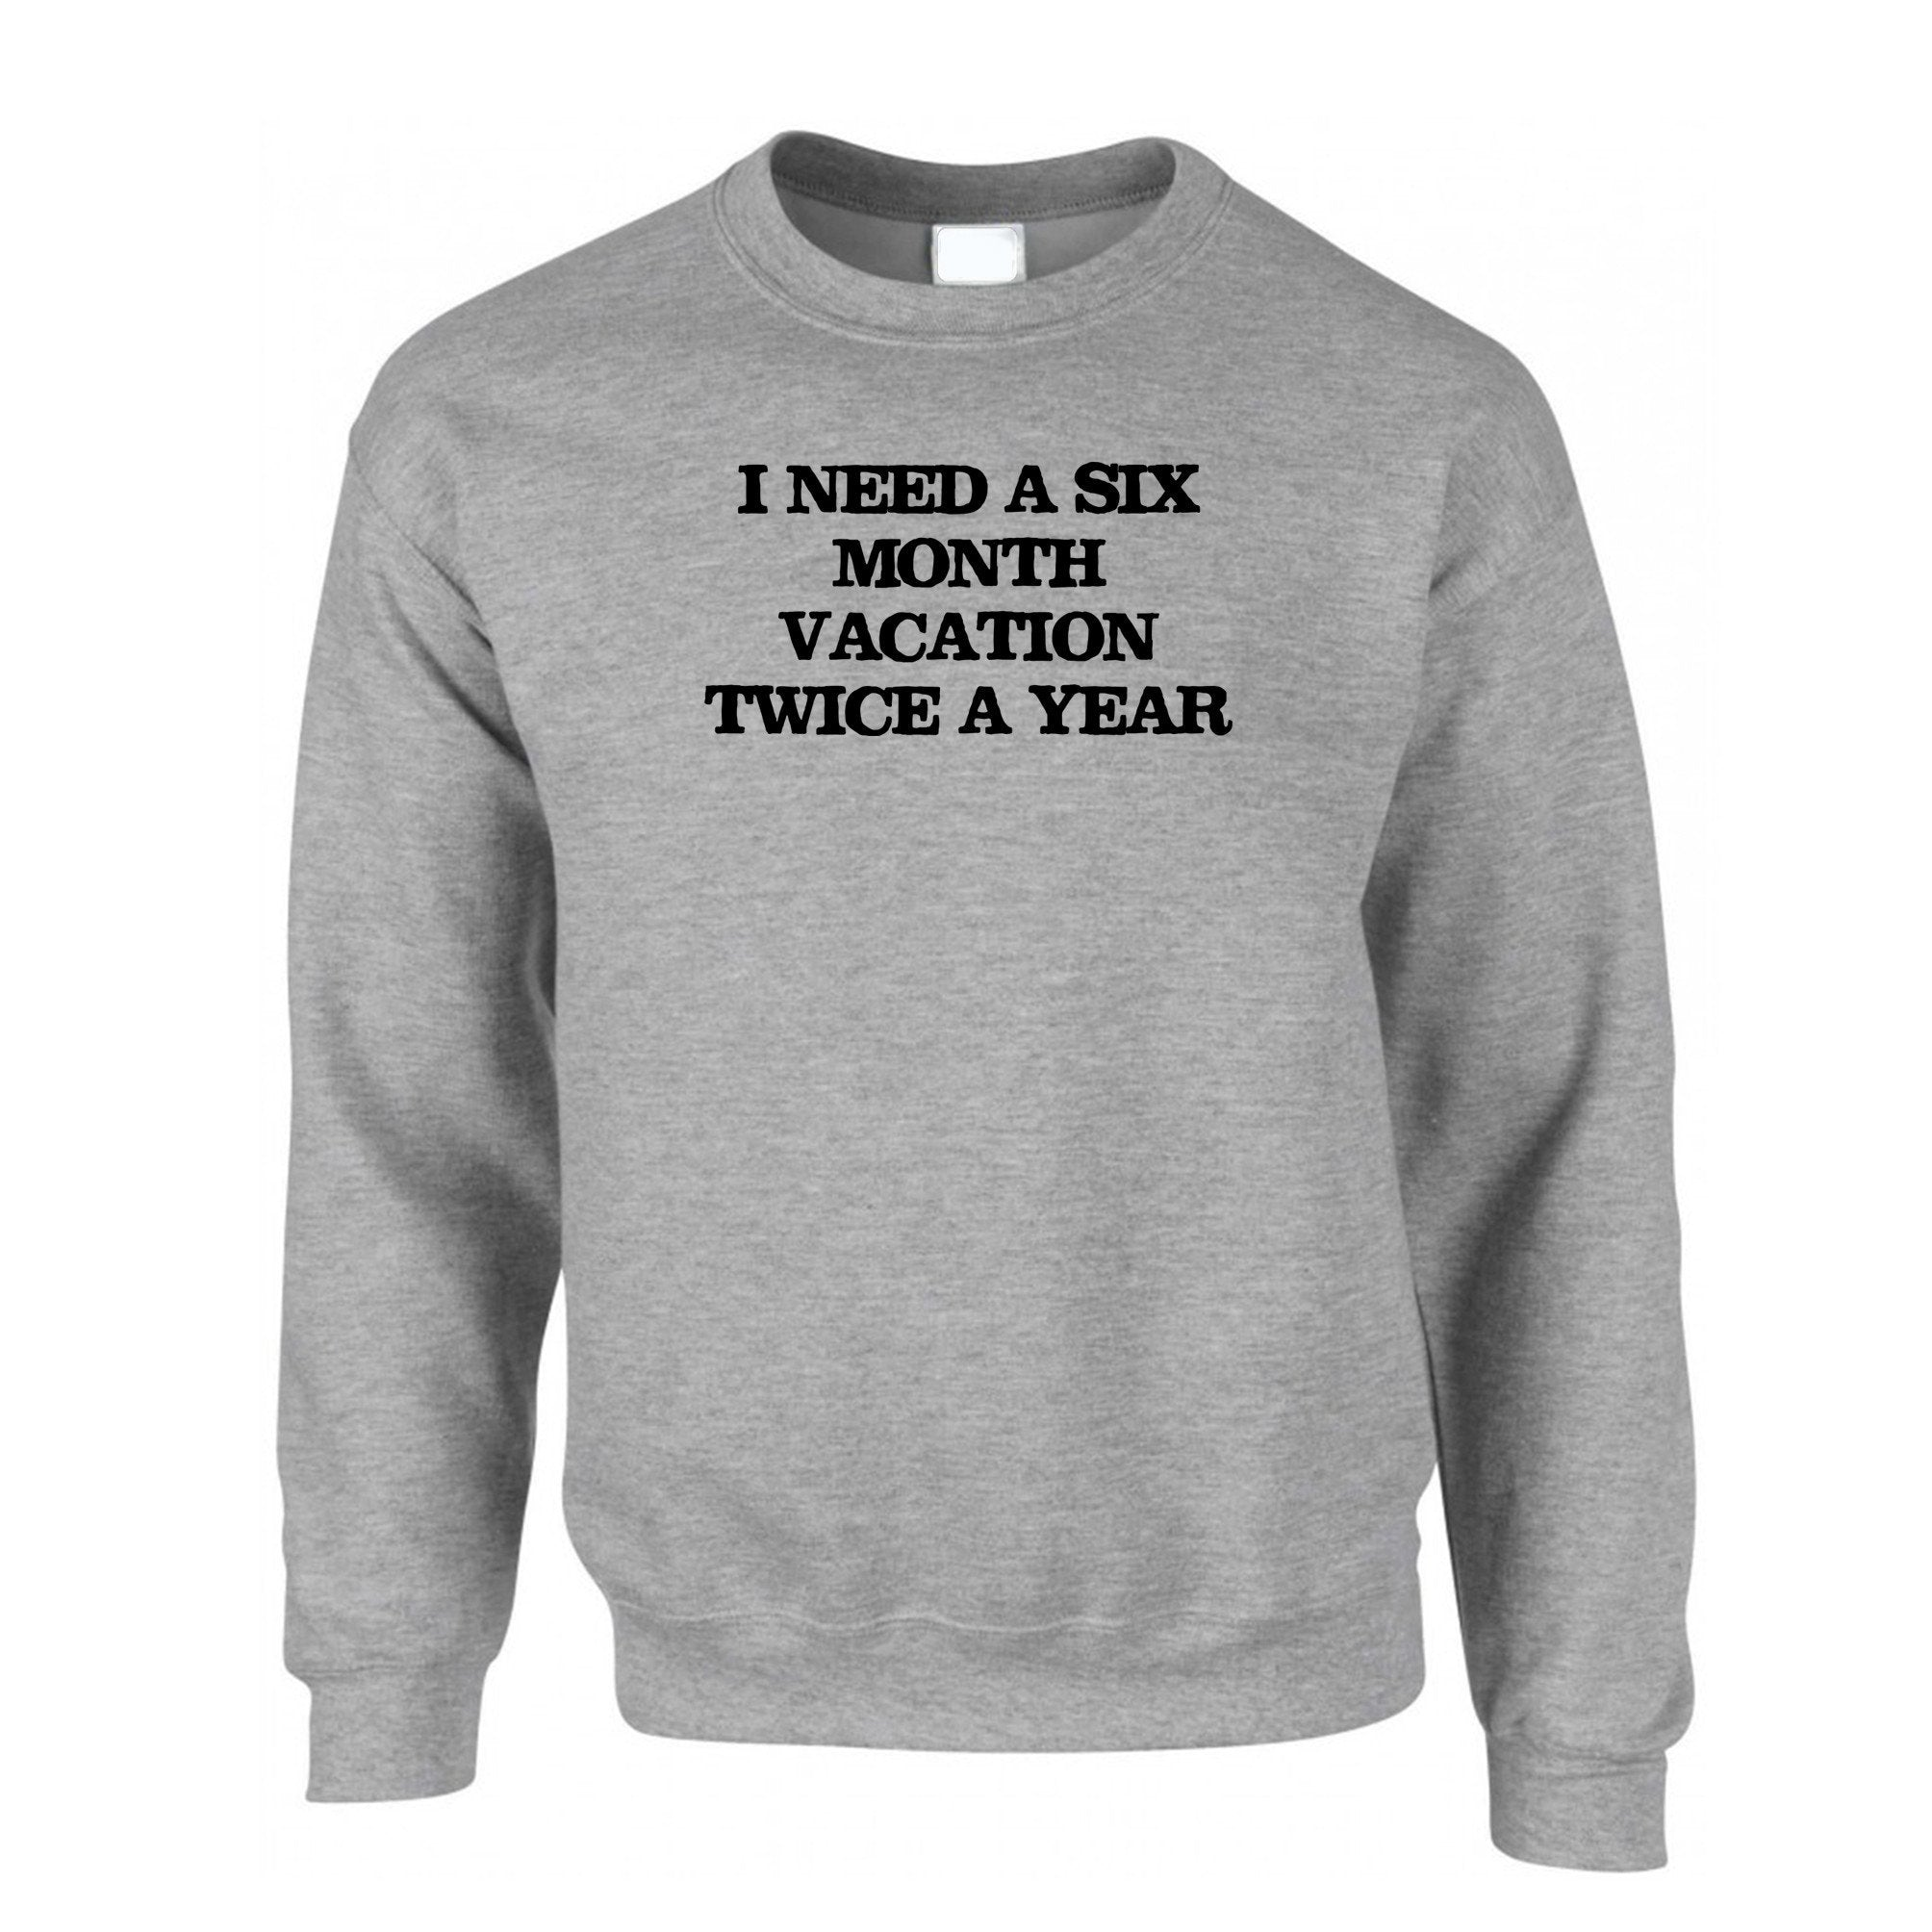 Novelty Jumper Need Six Month Vacation Twice A Year Sweatshirt Sweater